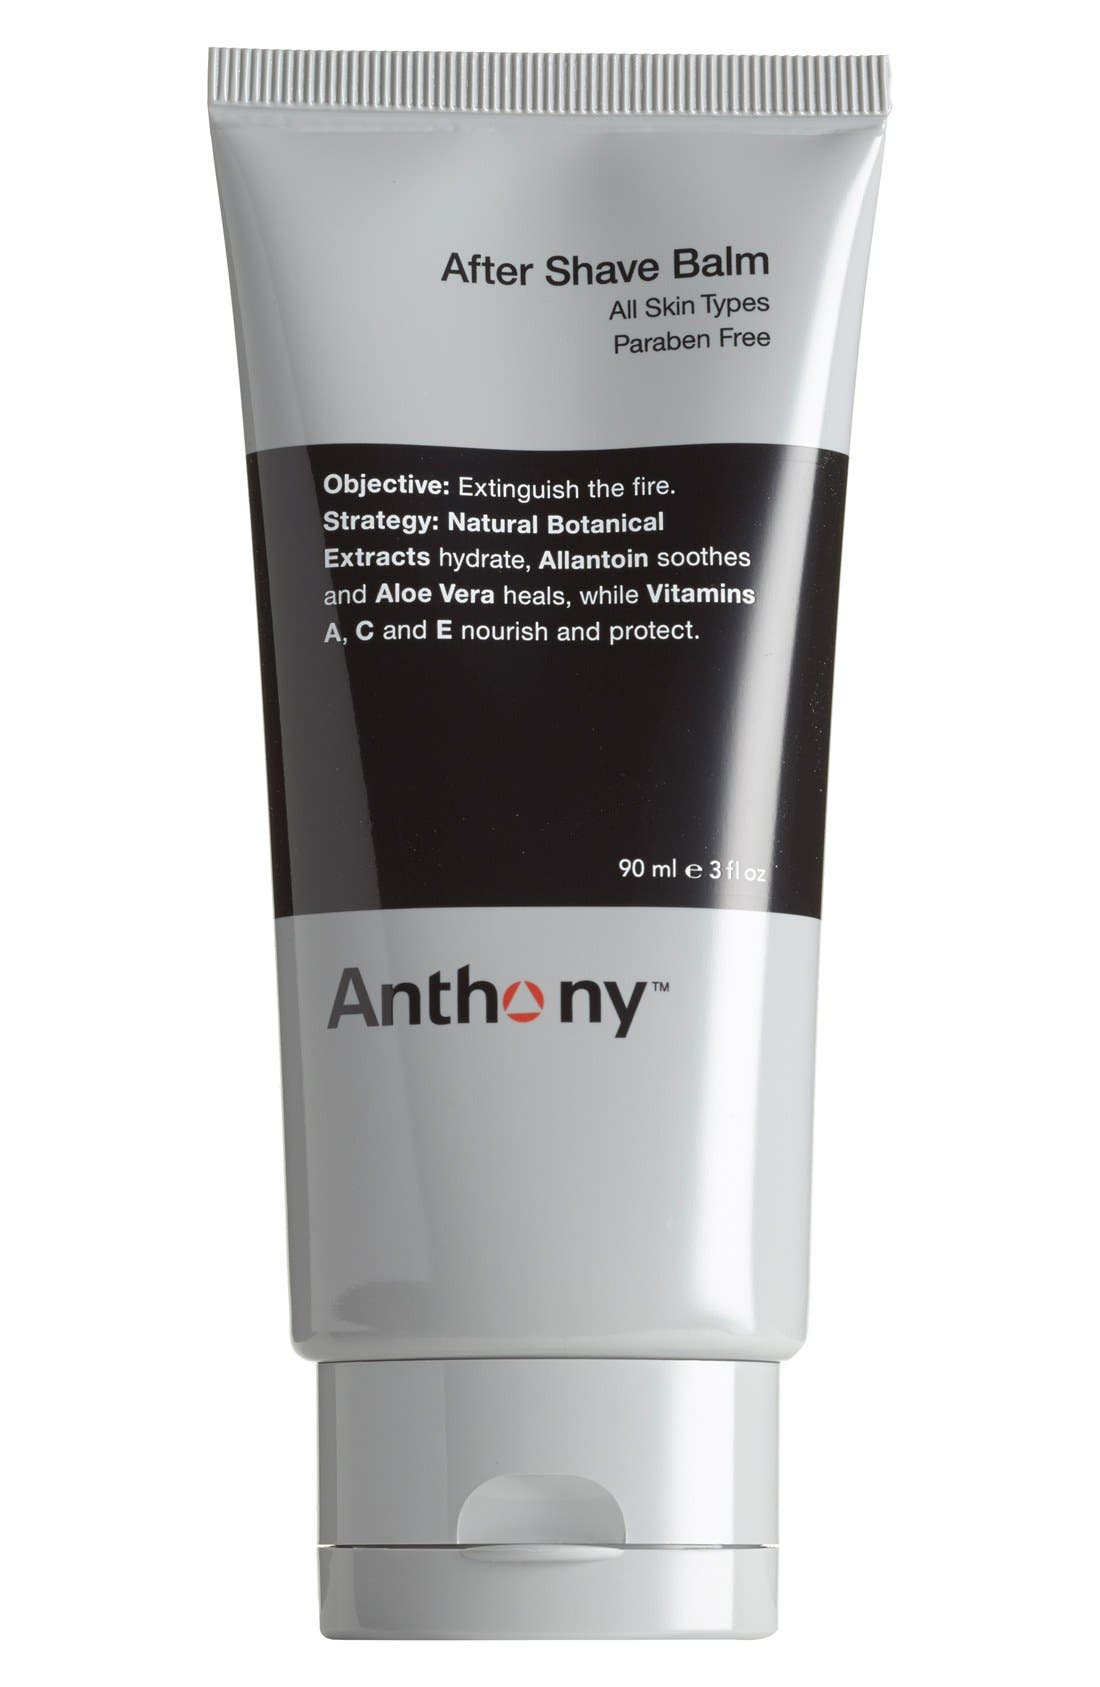 Anthony™ After Shave Balm